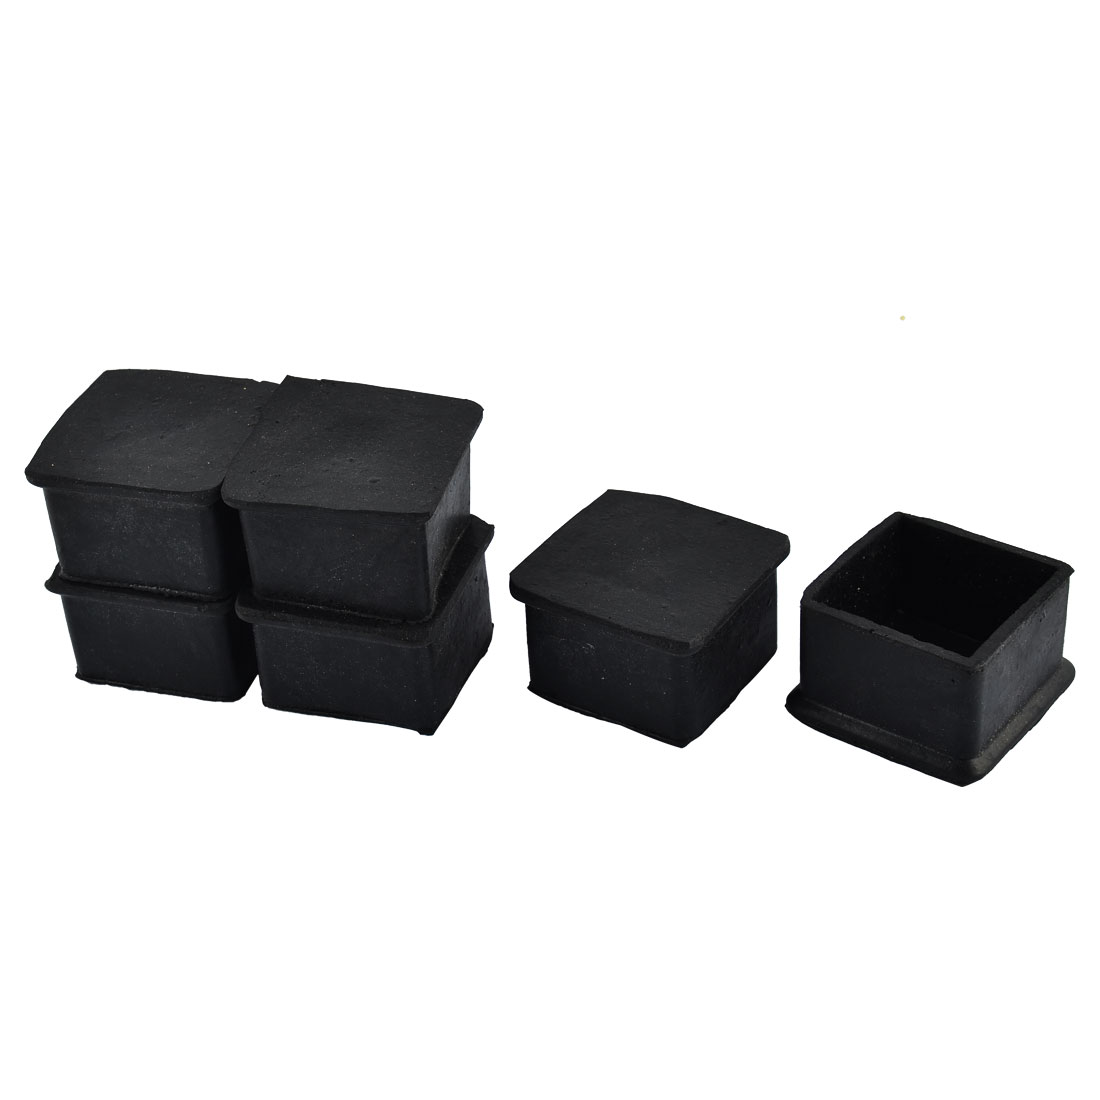 Furniture Table Chair Rubber Square Shape Foot Protector Pad Black 6pcs